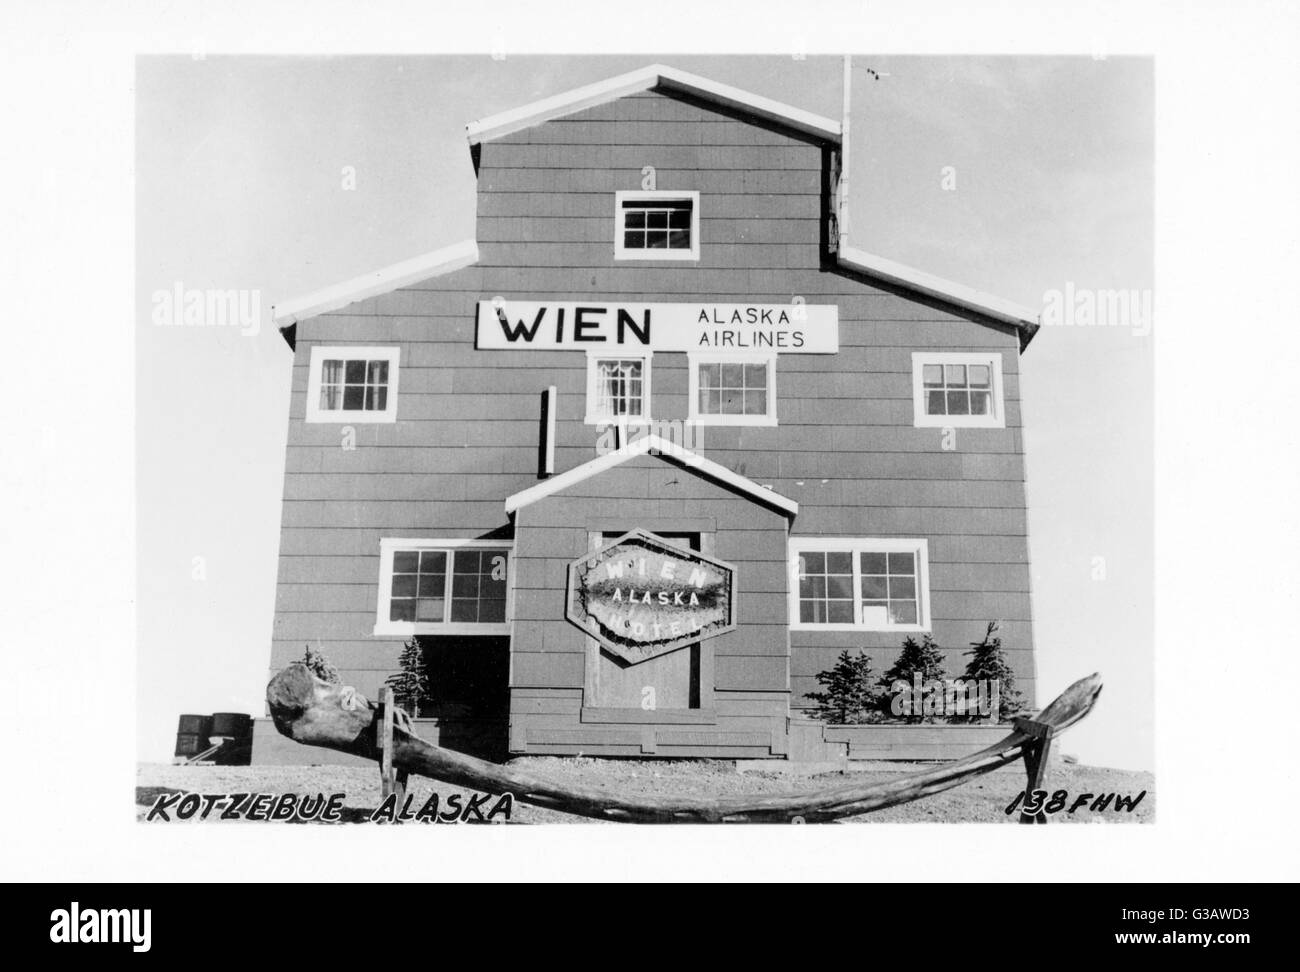 Wien Hotel and Alaska Airlines, Kotzebue, NW Alaska, north of the Arctic Circle, Bering Strait, USA.      Date: - Stock Image